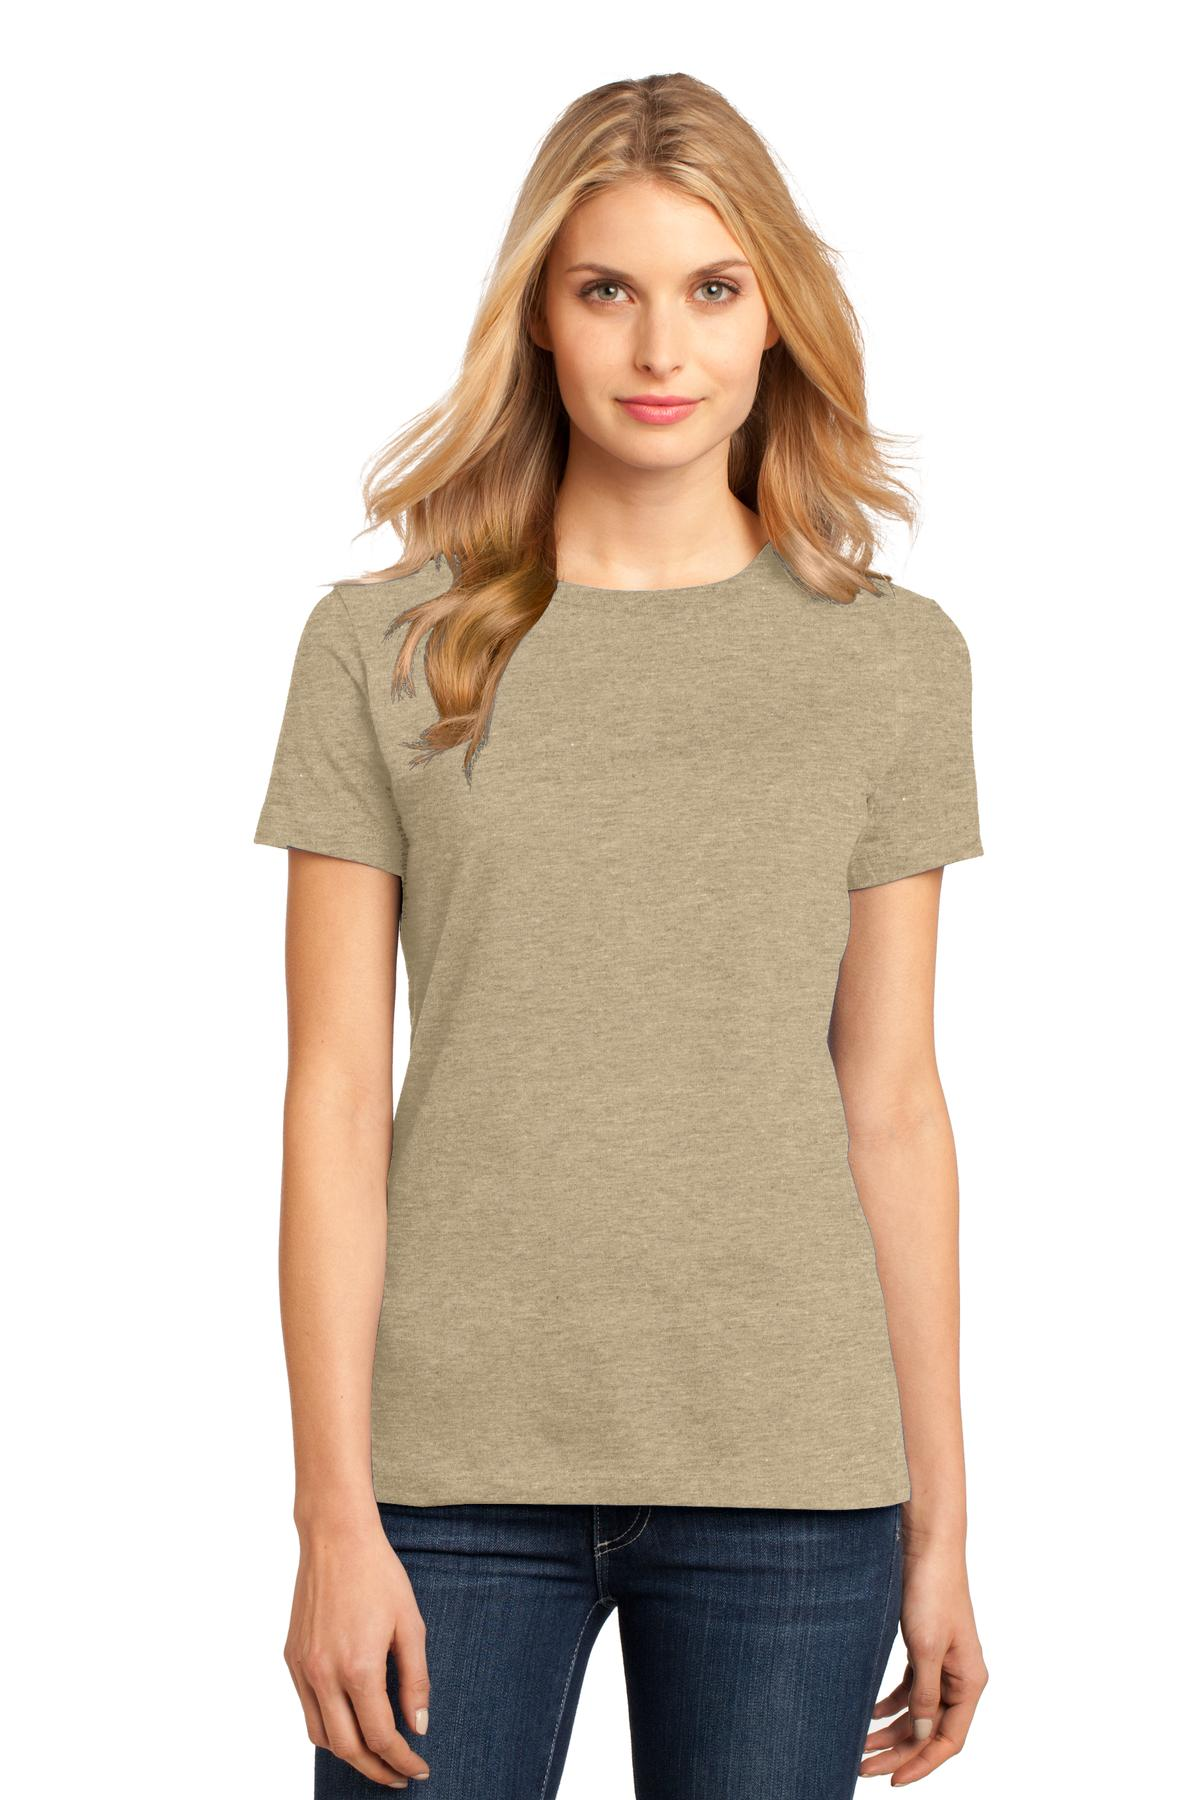 District ®  Women's Perfect Weight ® Tee. DM104L - Heathered Latte